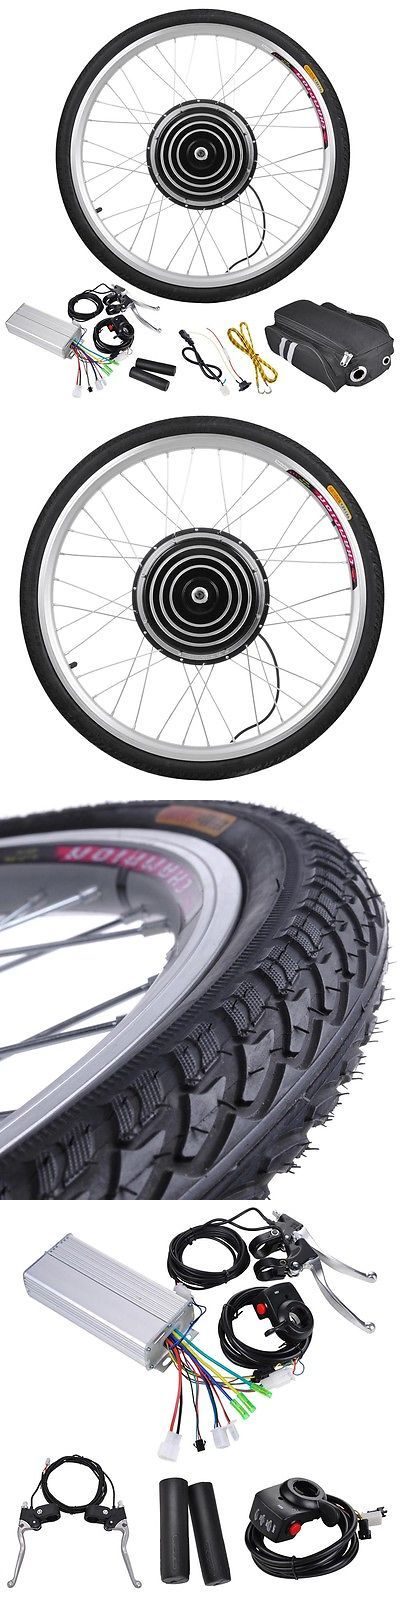 17 Best Ideas About Electric Bicycle On Pinterest Bike